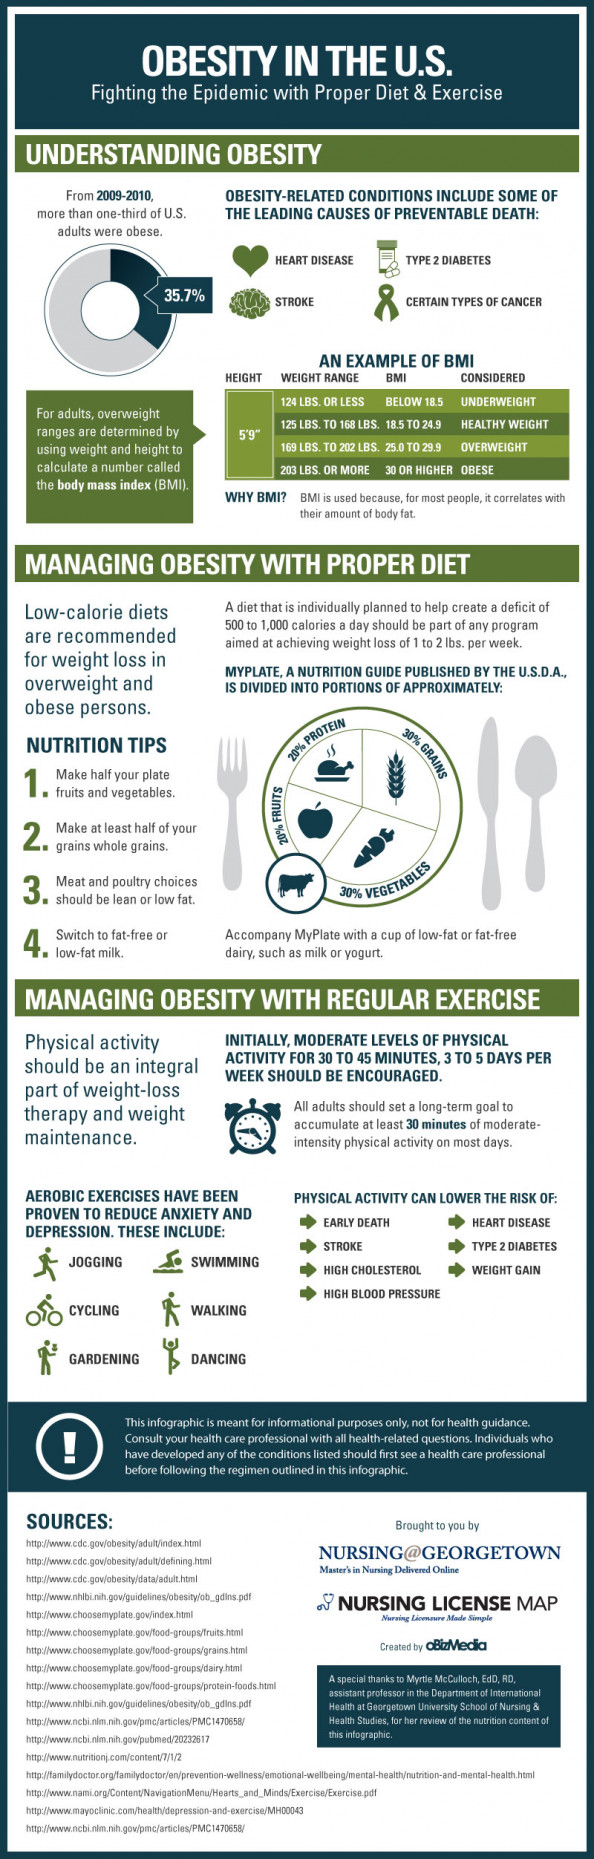 Obesity In The U.S.: Fighting The Epidemic With Proper Diet &amp; Exercise Infographic